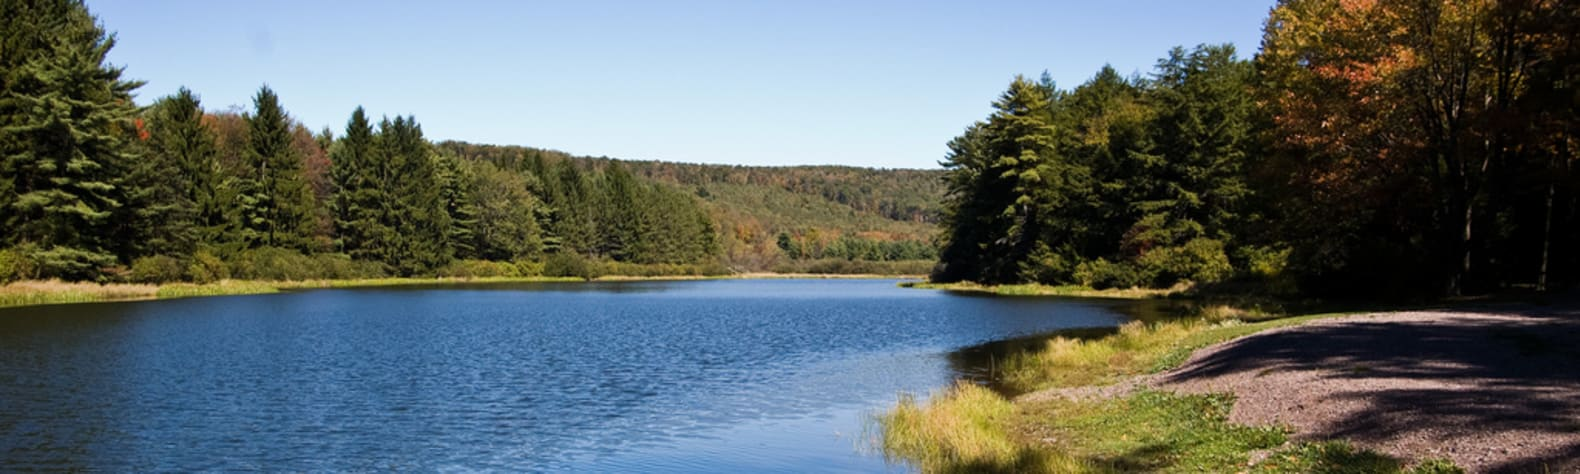 New Germany State Park